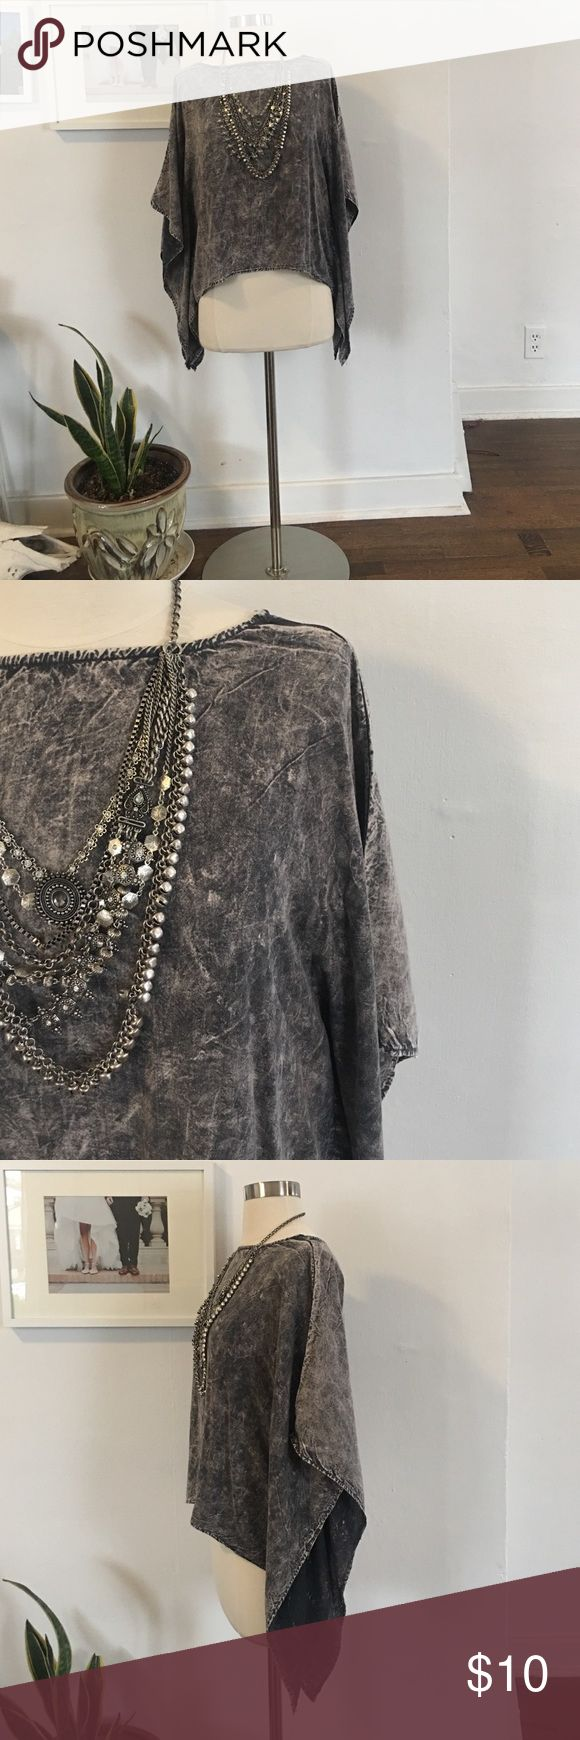 "Dark marble grey batwing sleeve top shirt NWT never worn. Dark grey burnout shirt with batwing draped sleeves. Faux buttoned back, round neck, 100% polyester. 12"" sleeves, 30"" length. Size large. Mustard Cartel Tops Blouses"